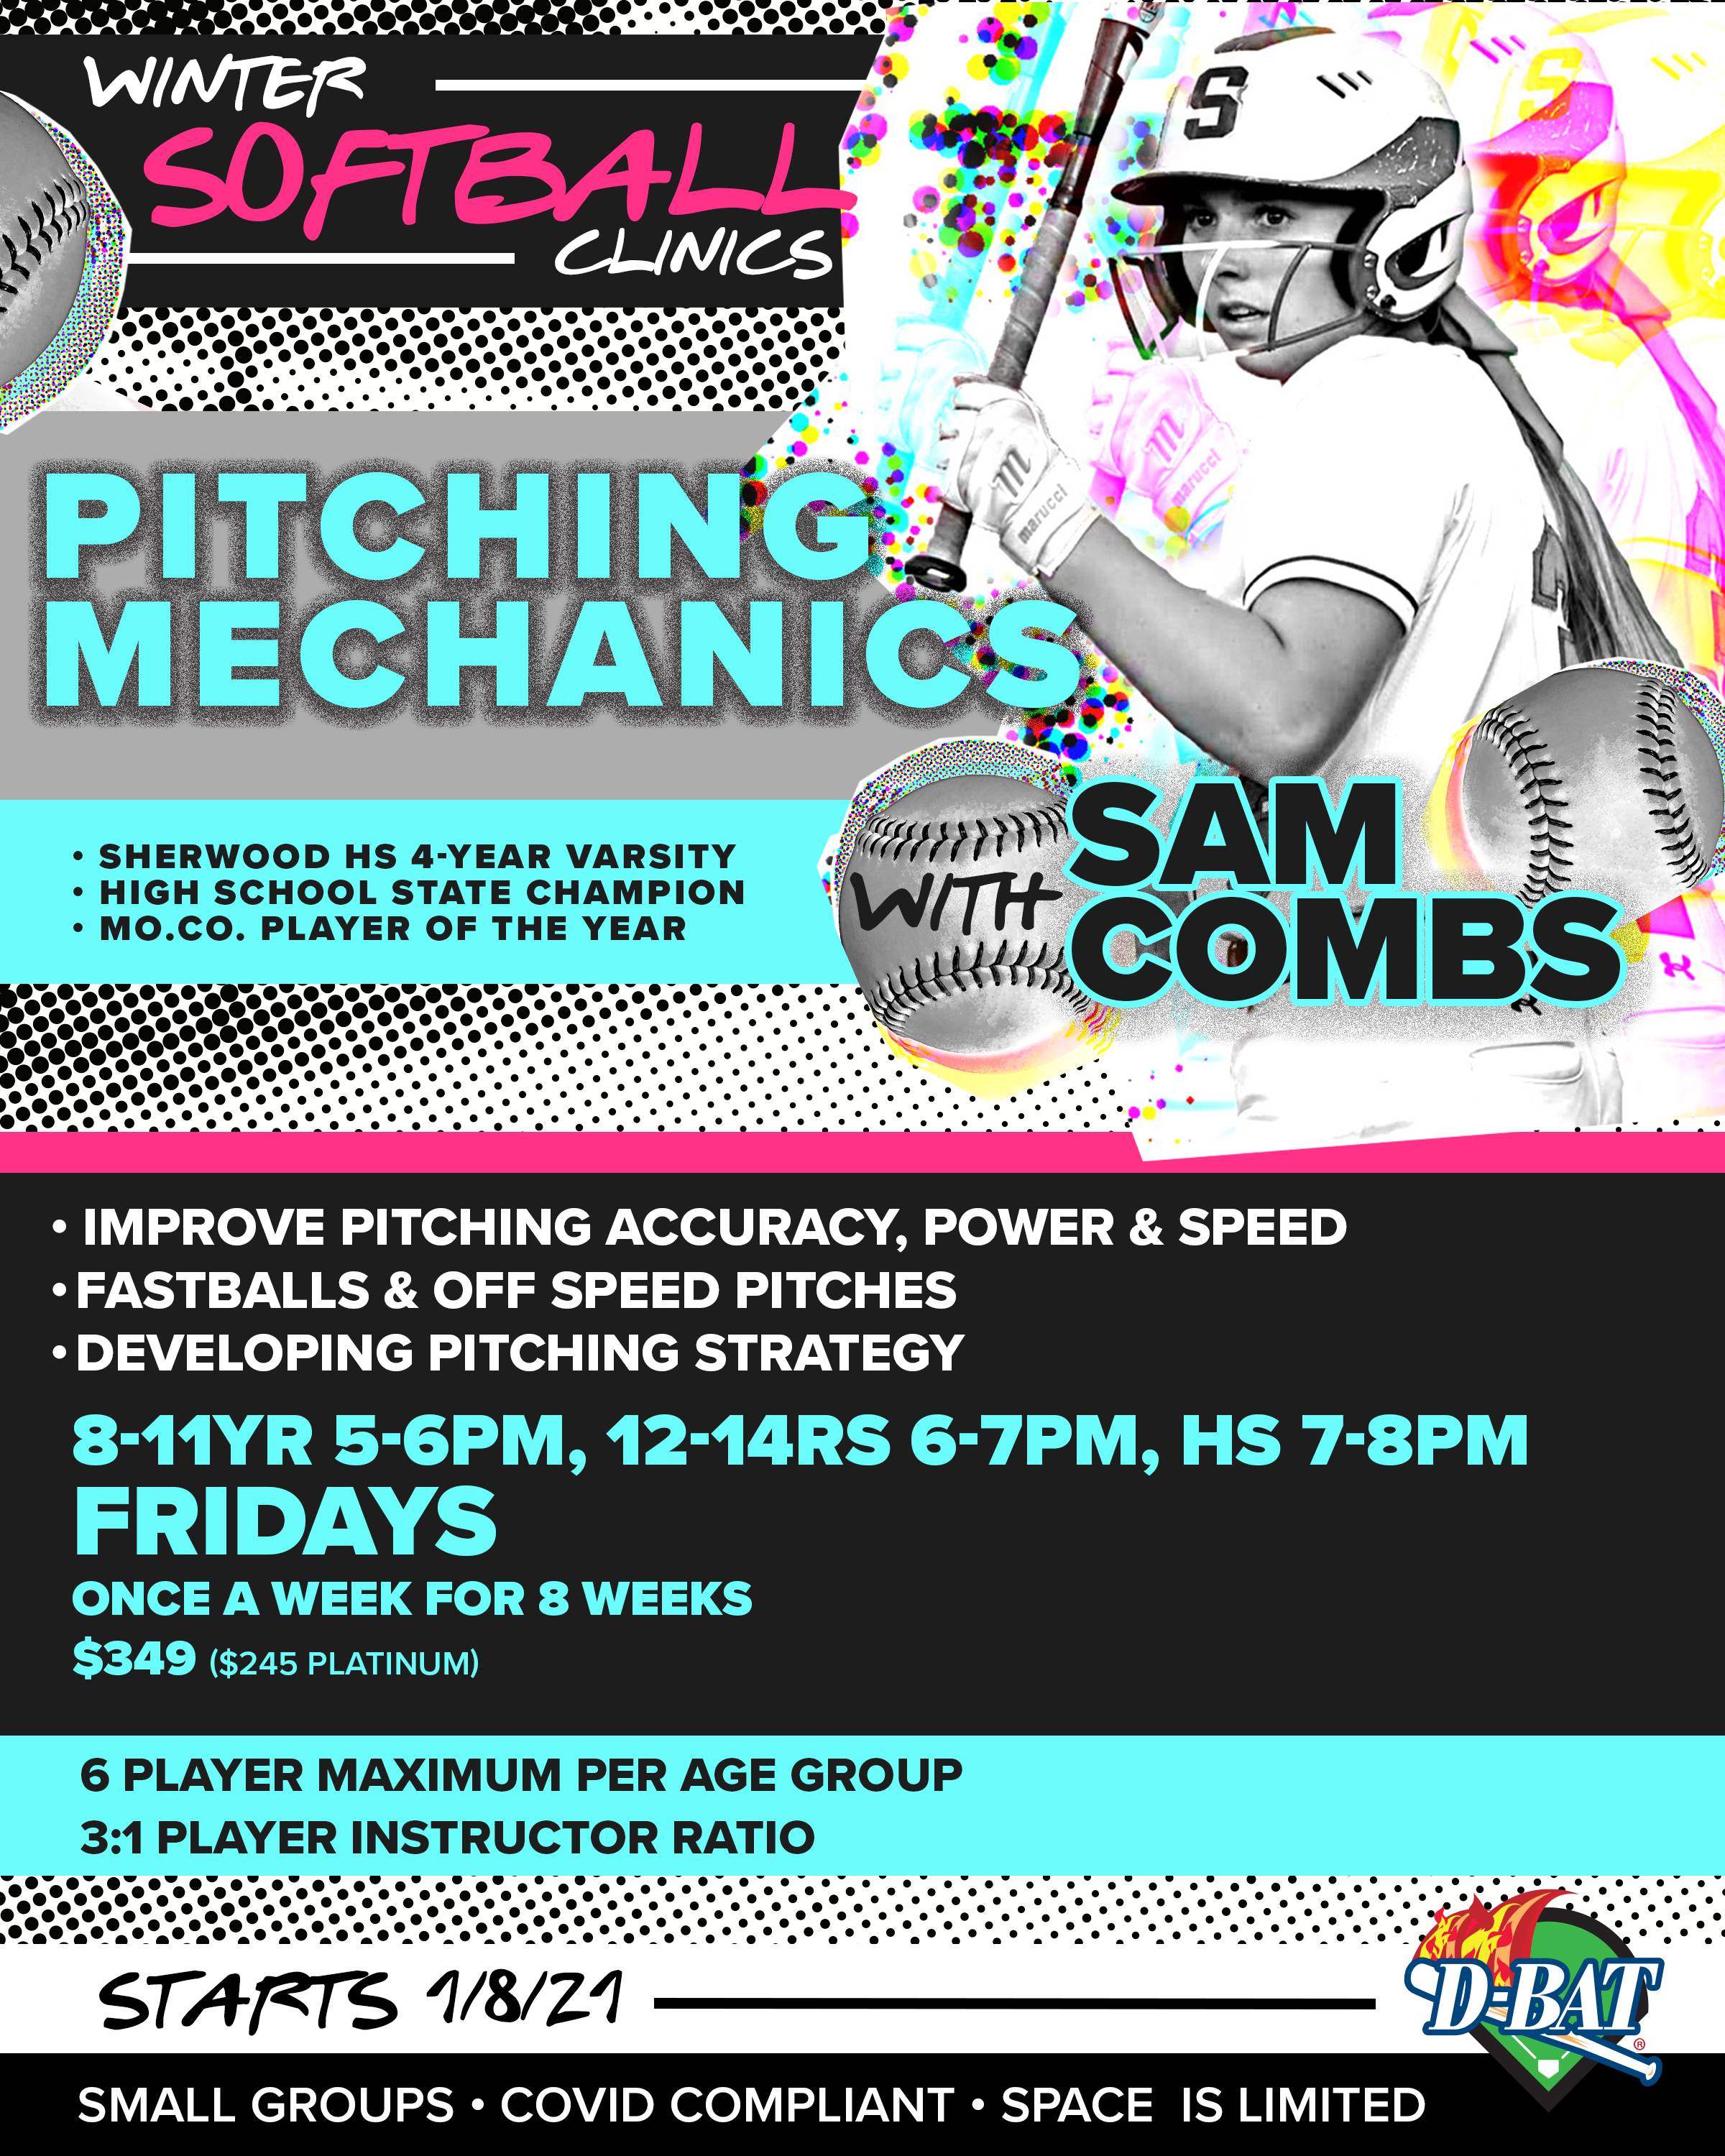 Pitching Mechanics - Click to register